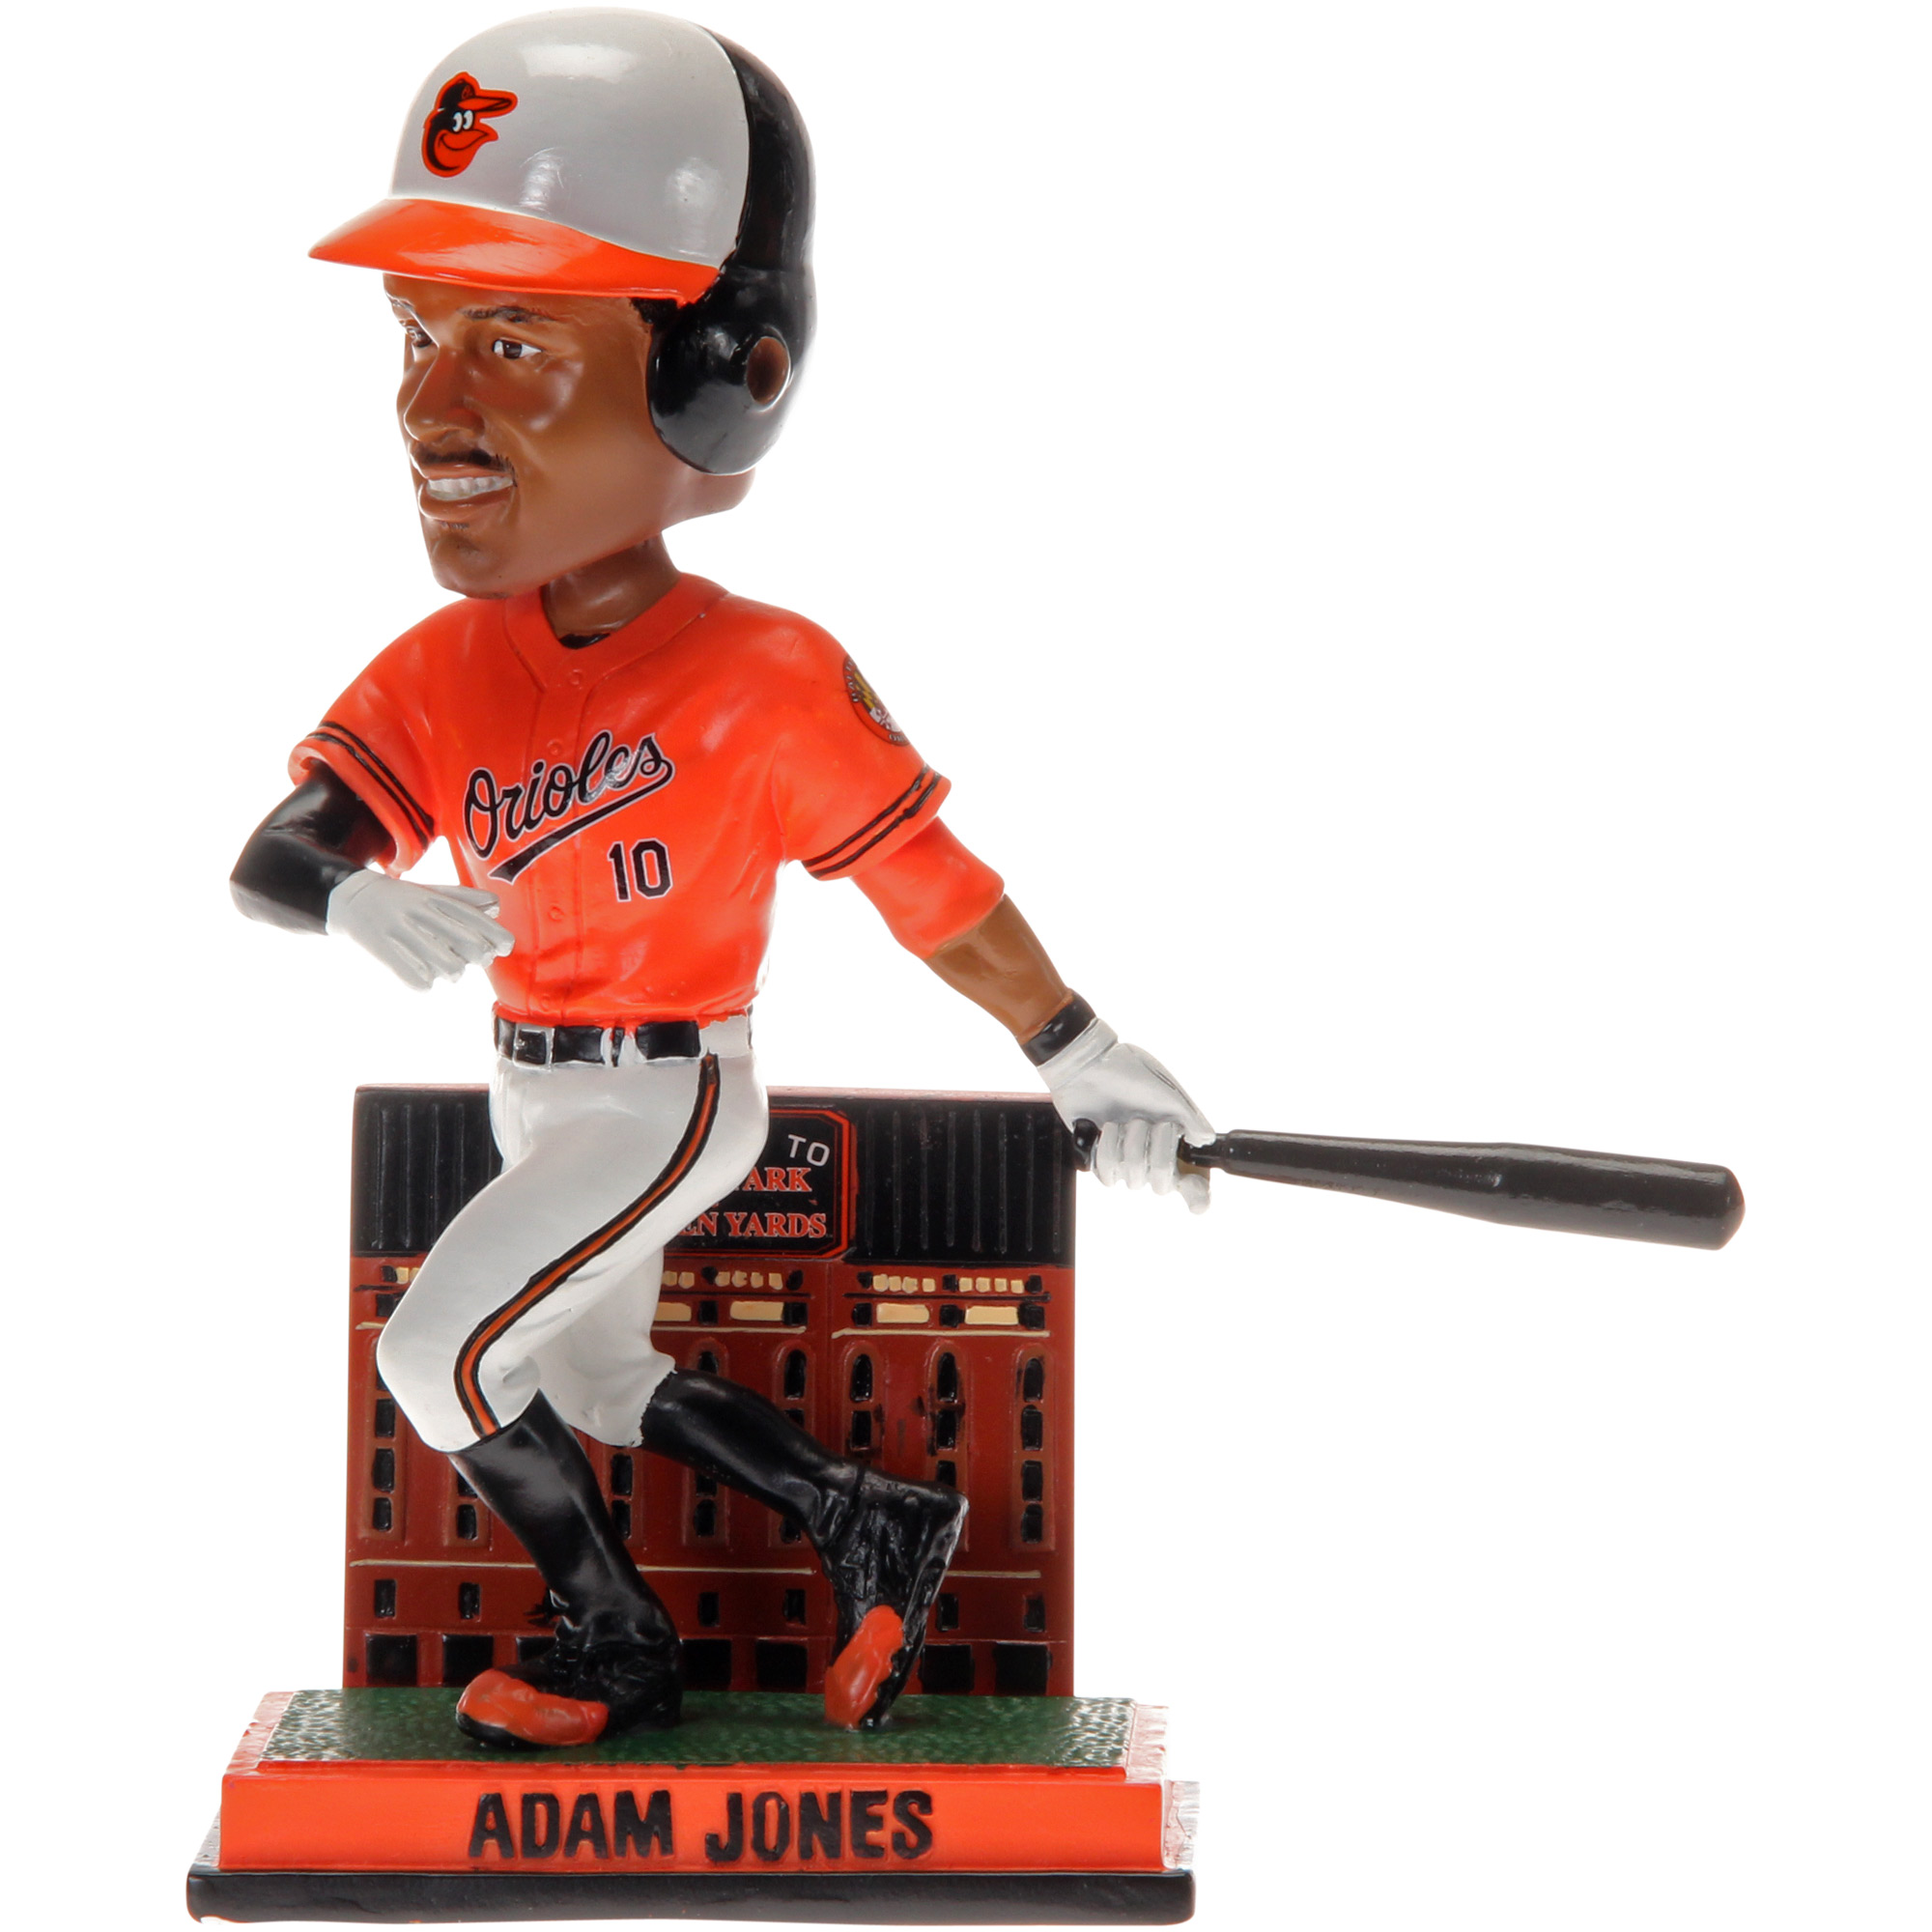 Adam Jones Baltimore Orioles Bobblehead - No Size